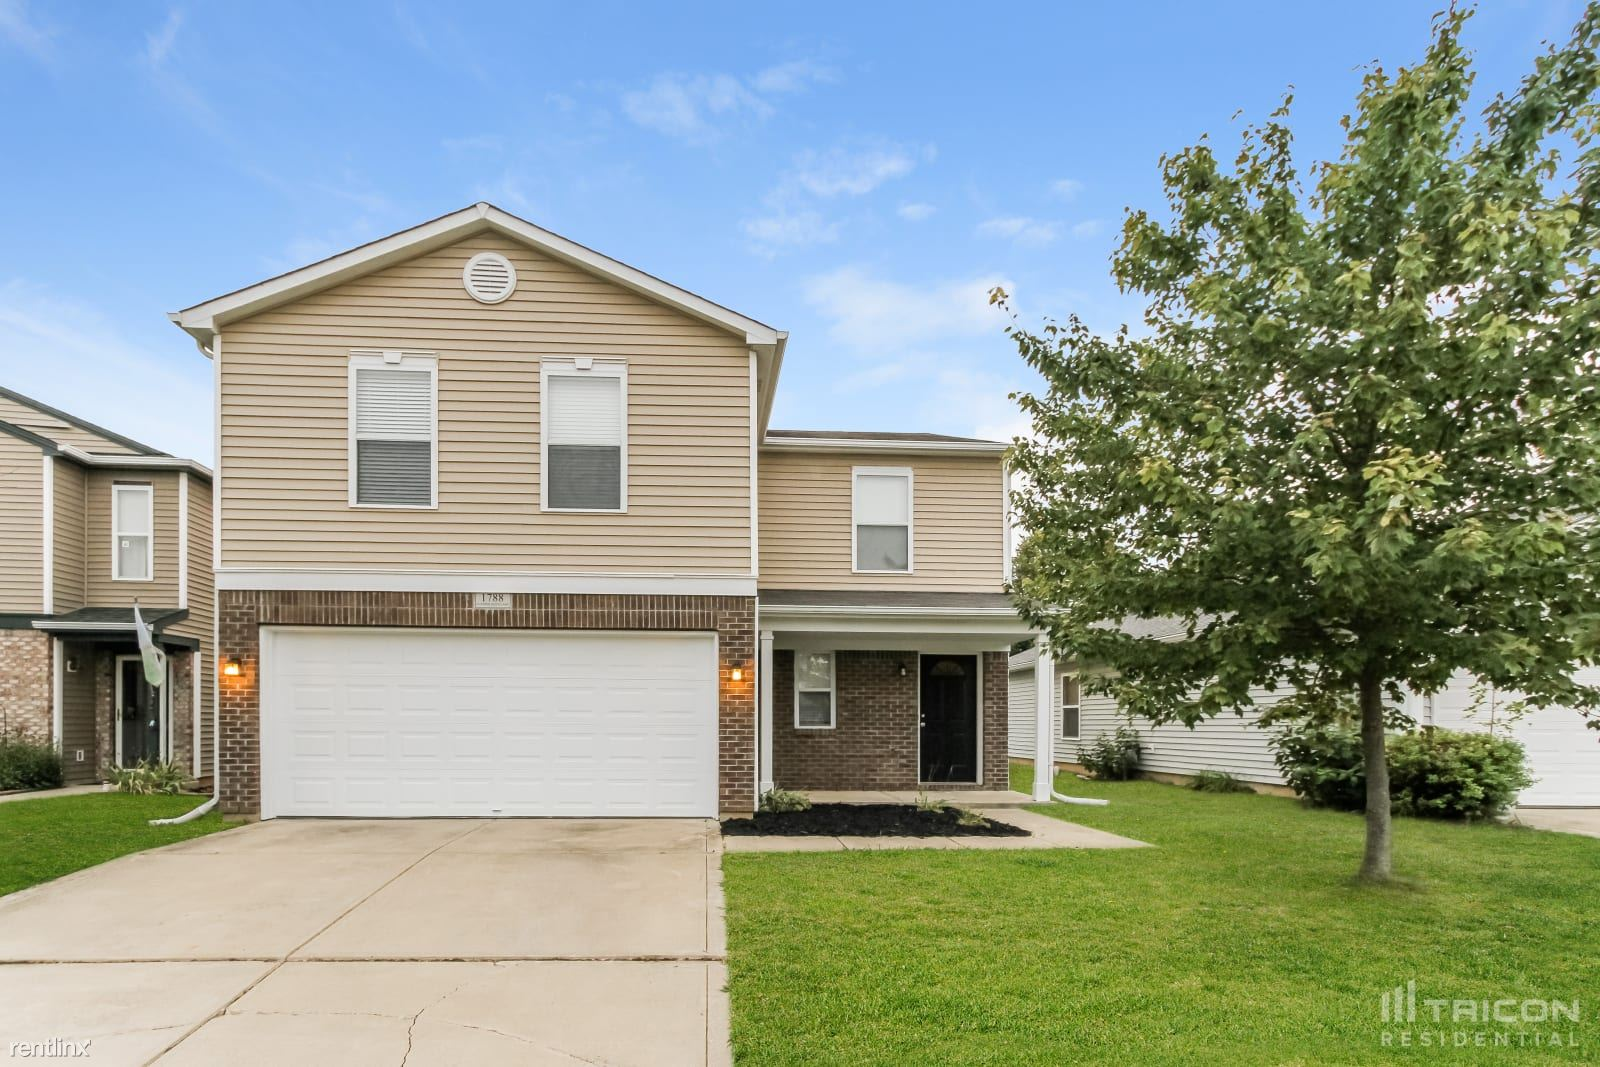 1788 Feather Reed Lane - 1499USD / month